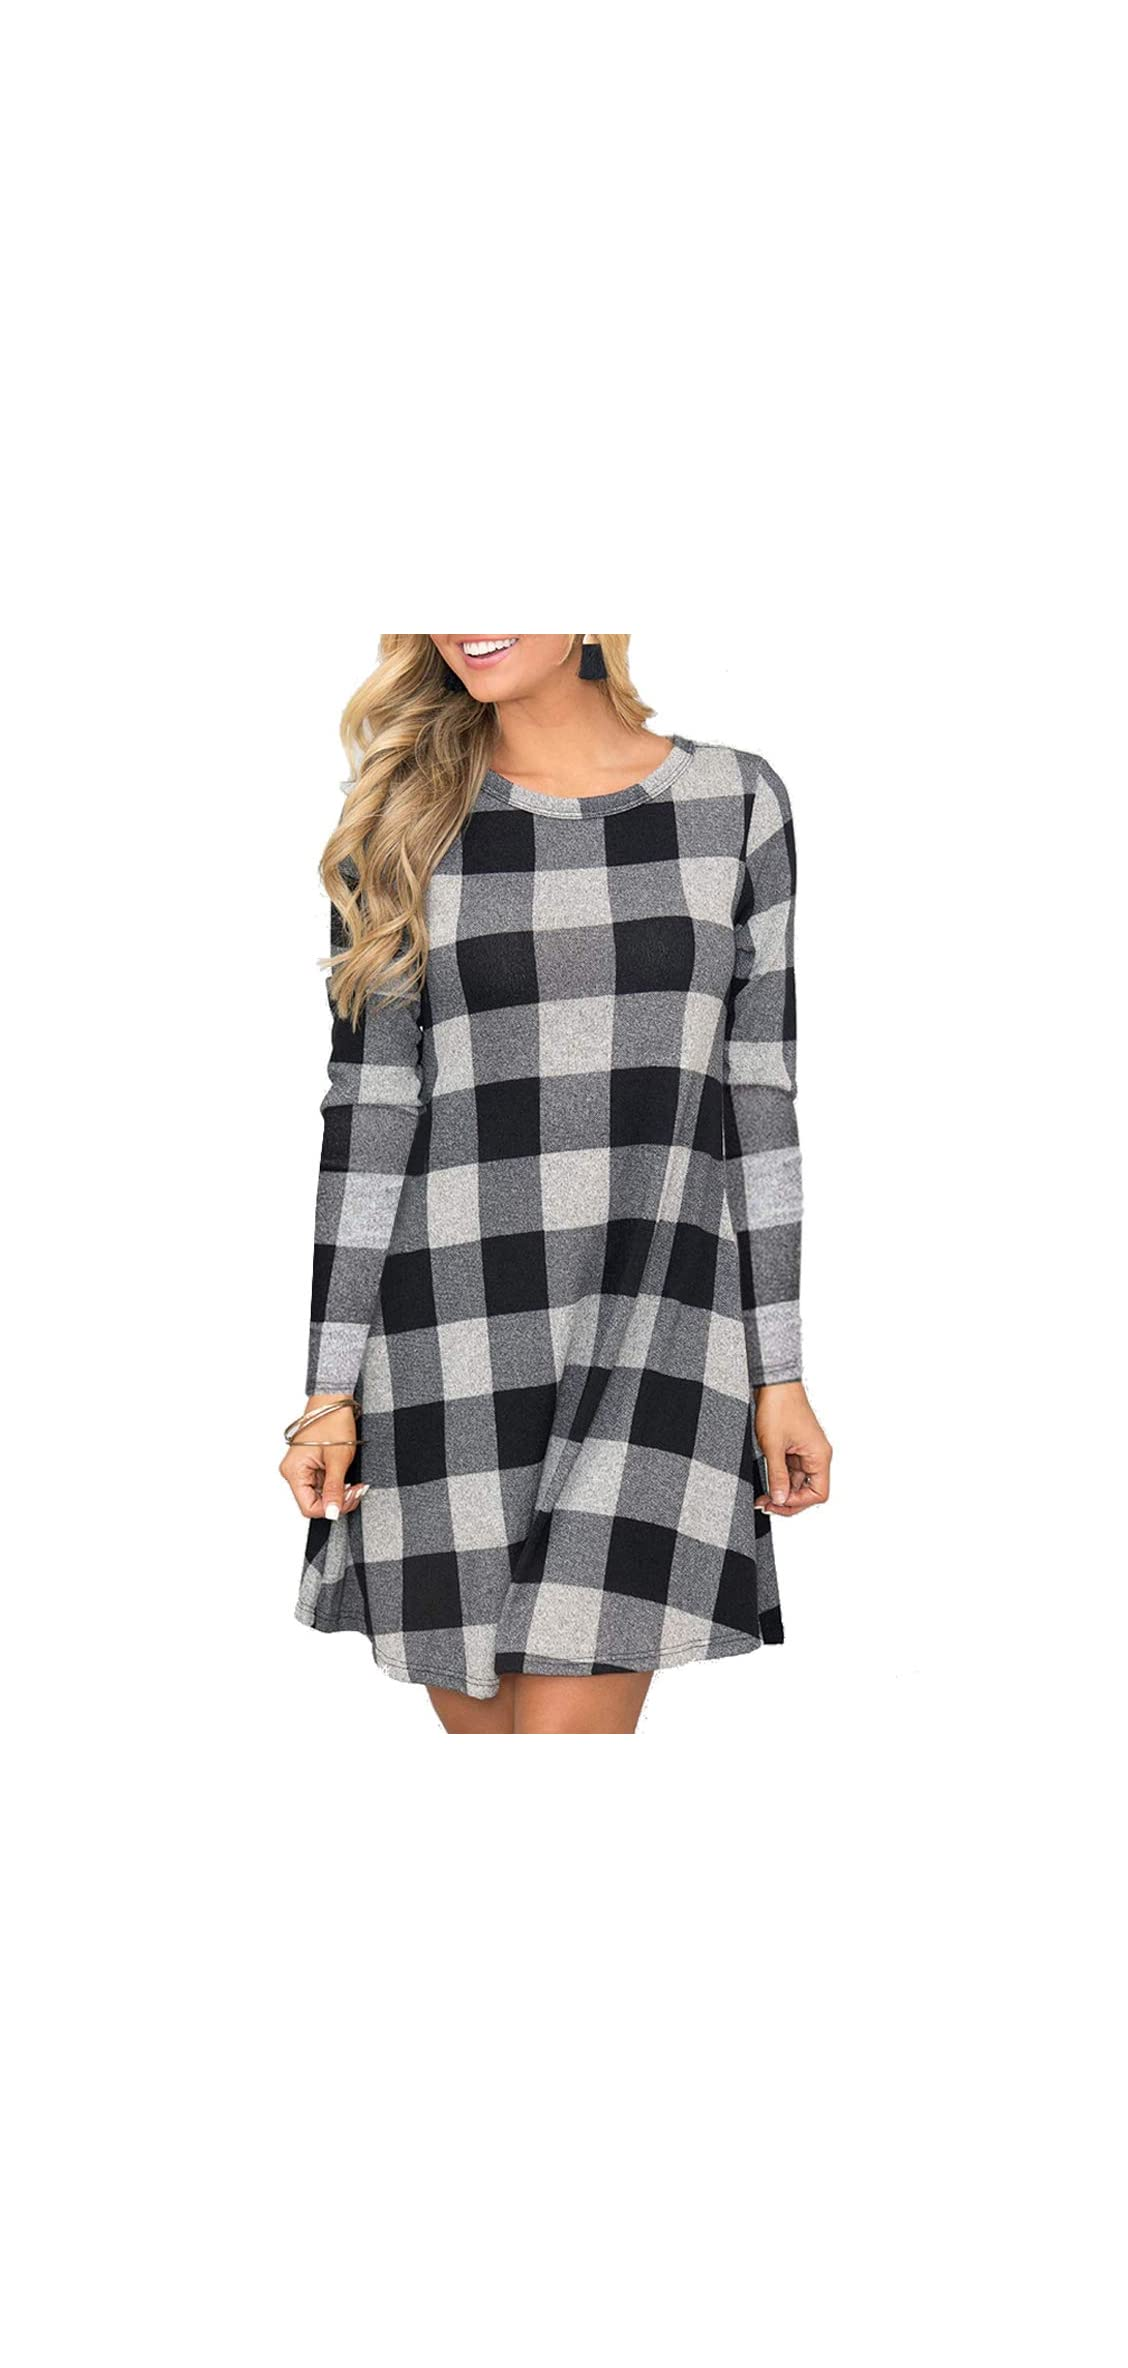 Women's Long Sleeve Plaid Color Block Casual Swing Loose